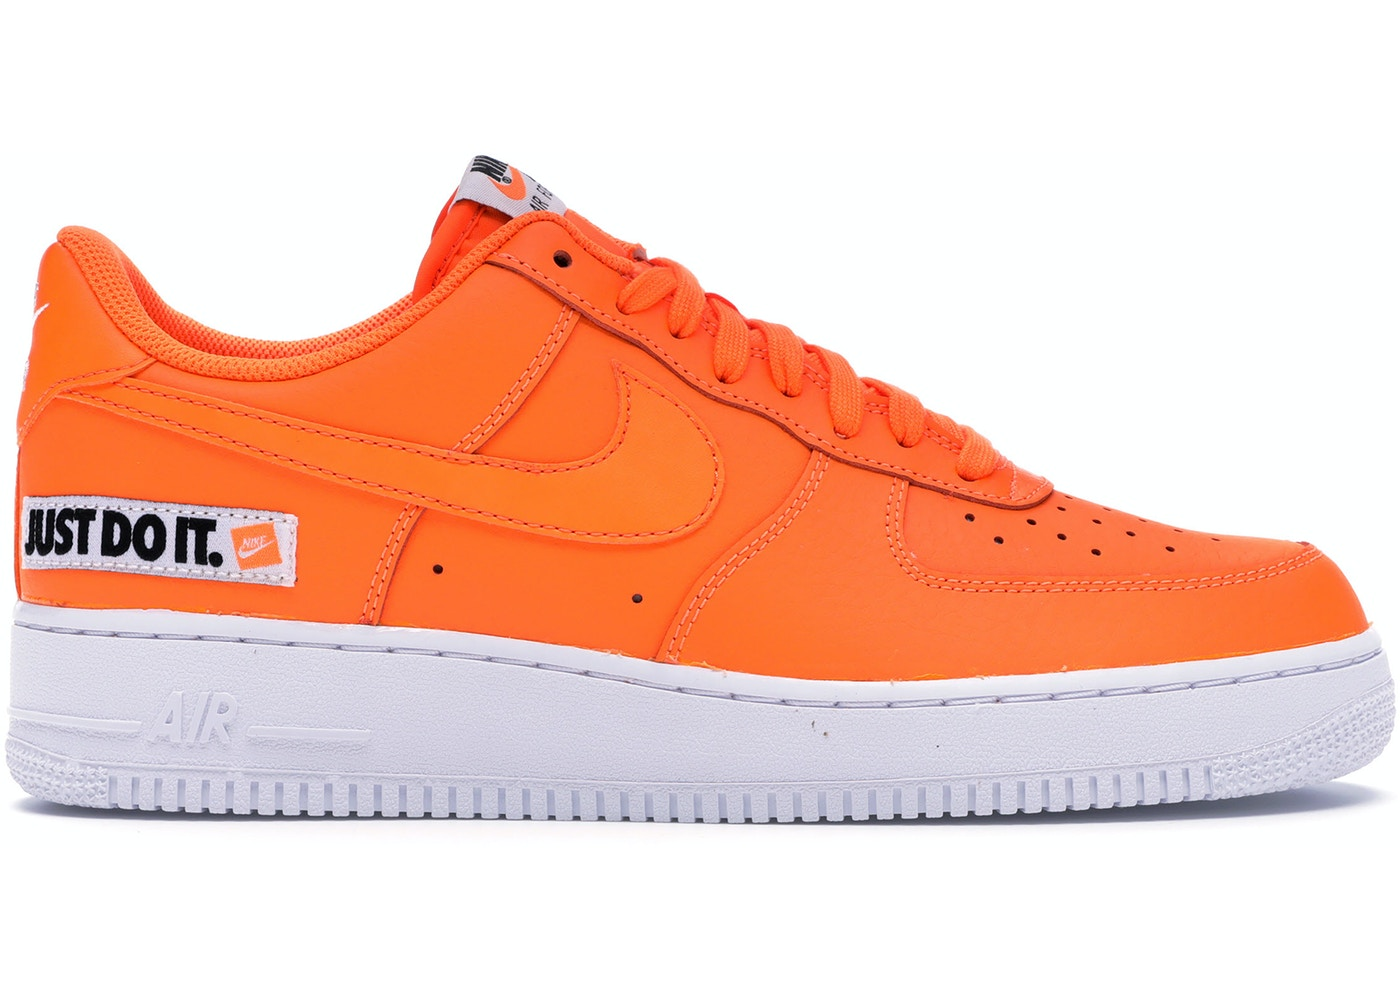 Air Force 1 Low Just Do It Pack Orange - AO6296-800 BQ5360-800 71d756576